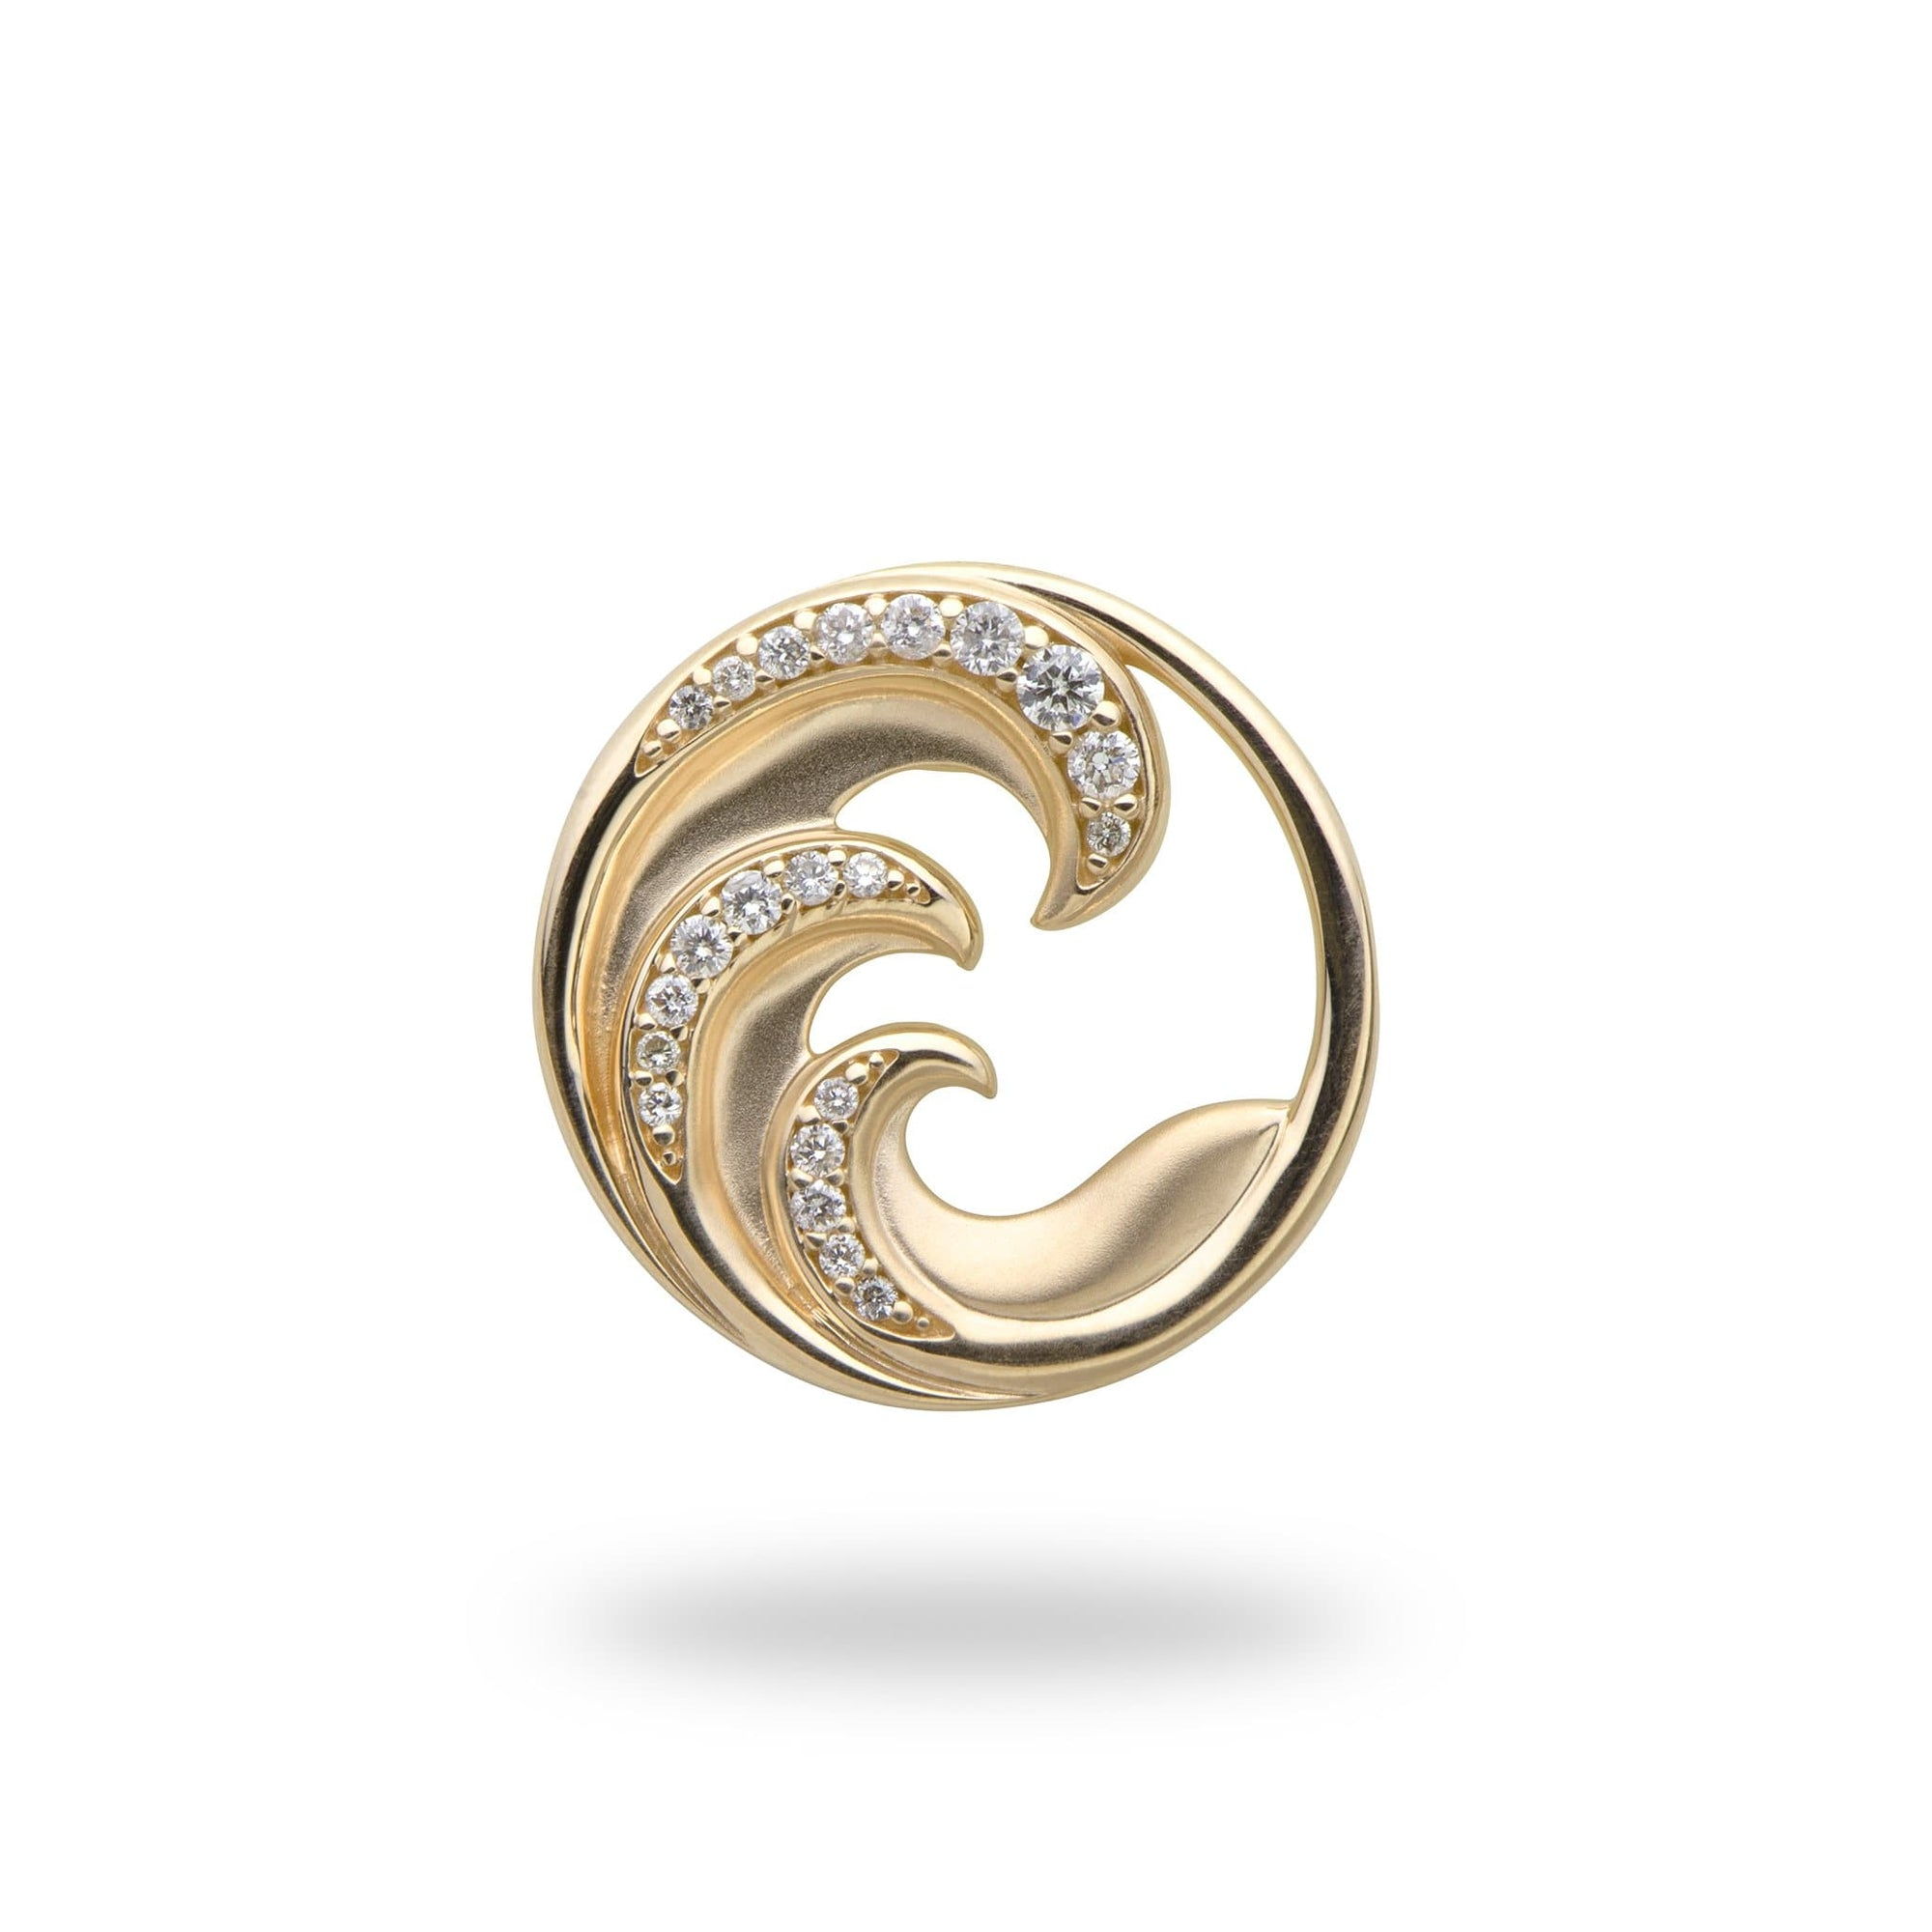 Nalu Pendant in Gold with Diamonds - 18mm - Maui Divers Jewelry